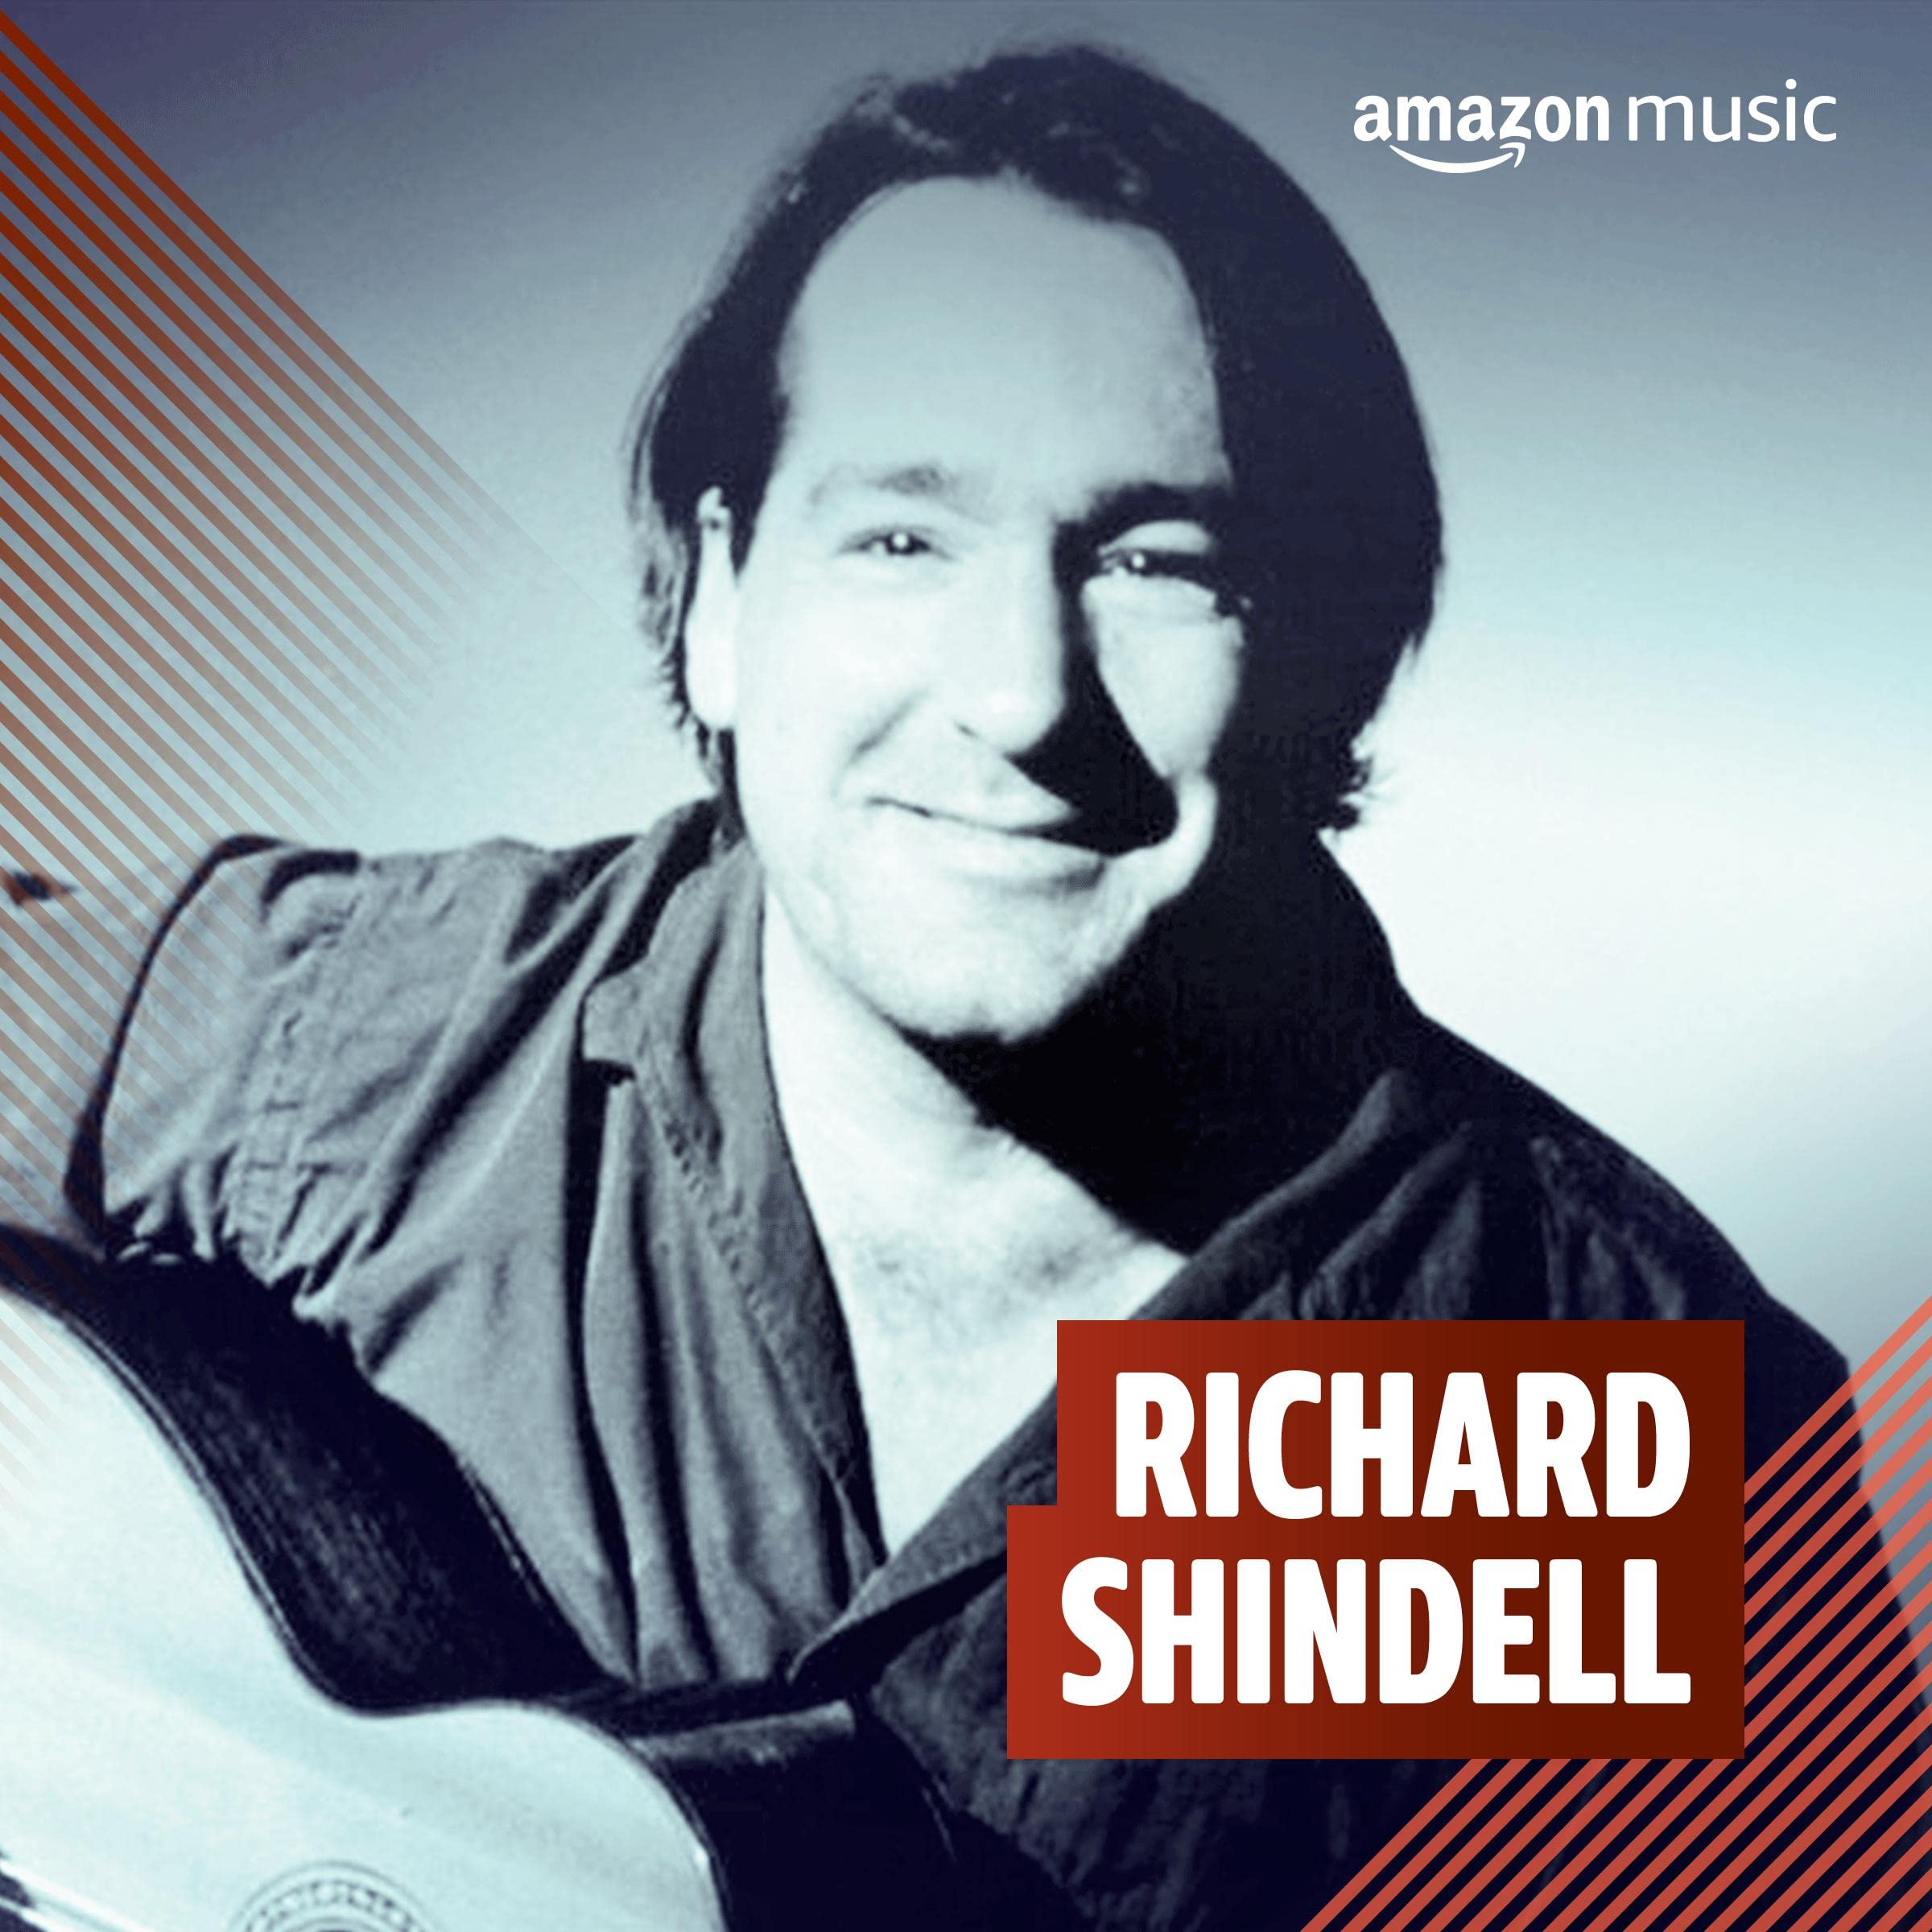 Richard Shindell